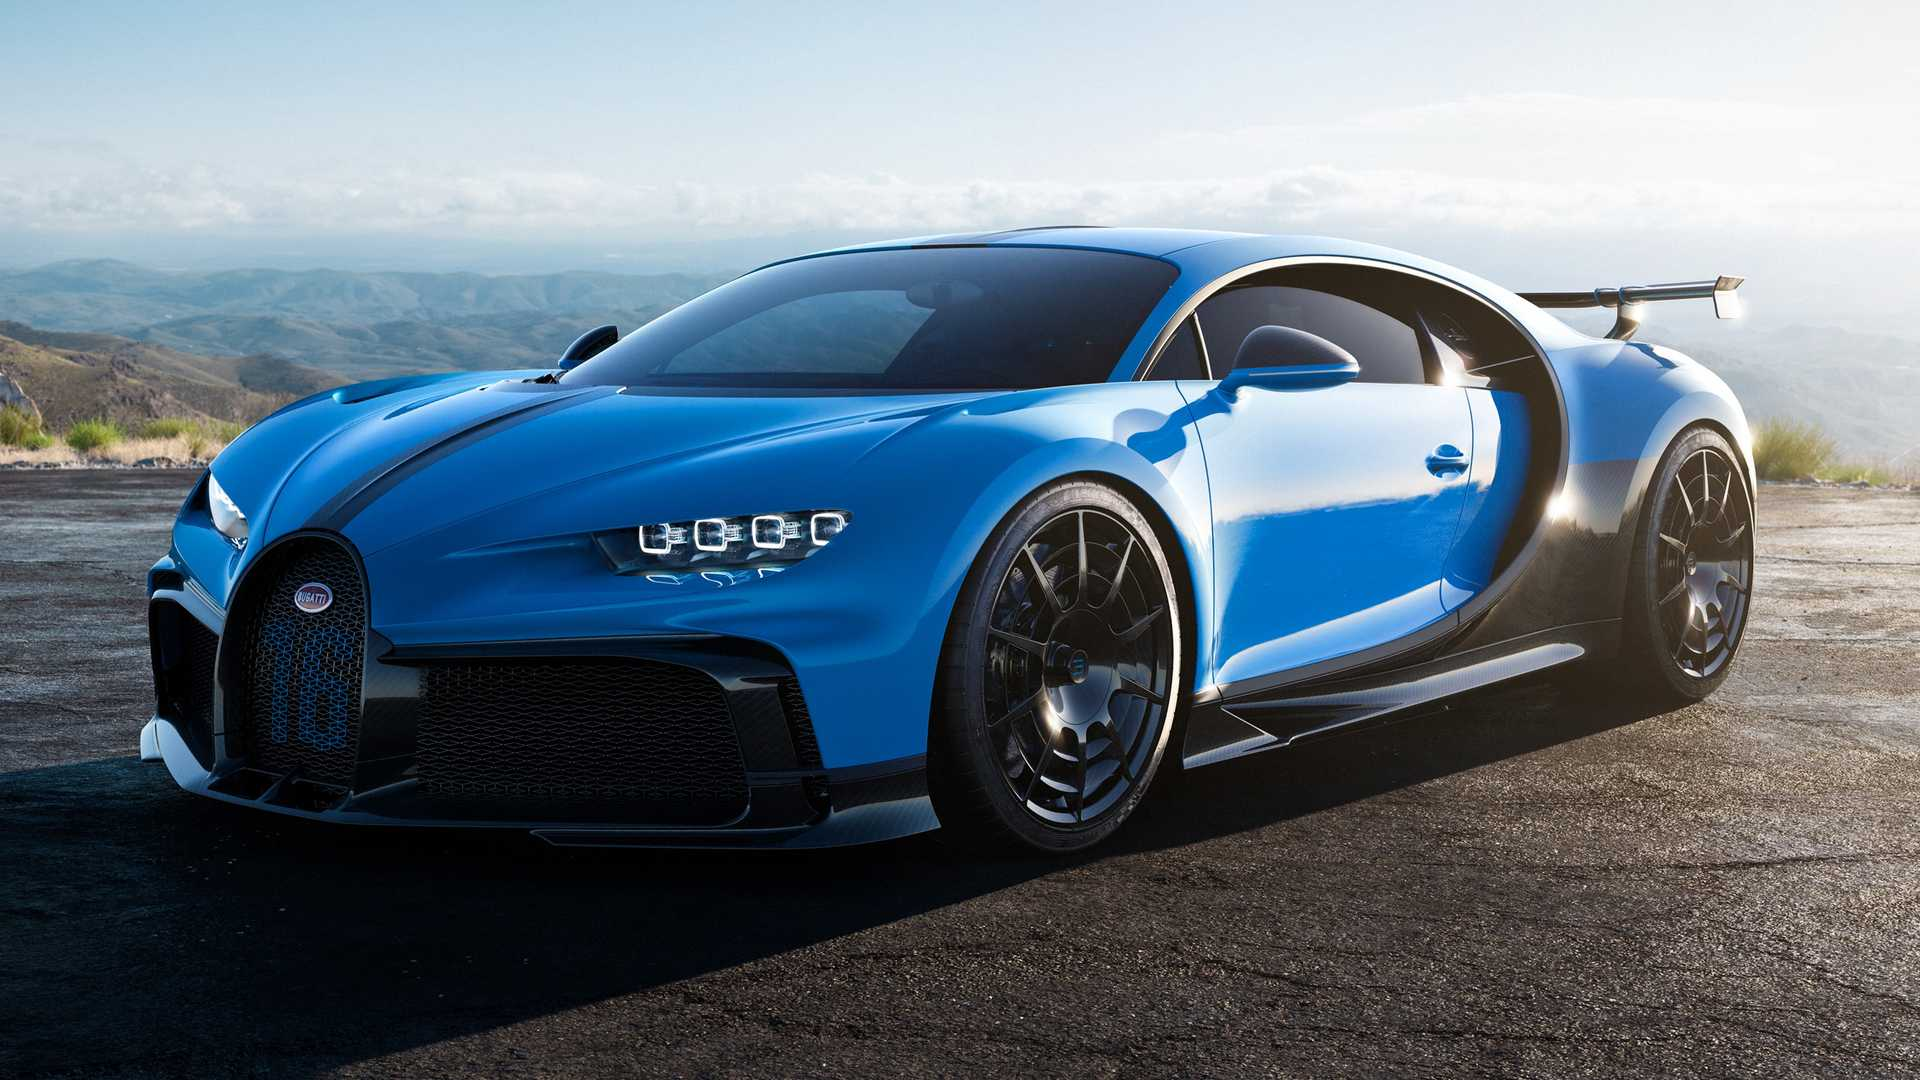 Bugatti Chiron Pur Sport Passes No Gas Station With 8 MPG City Rating